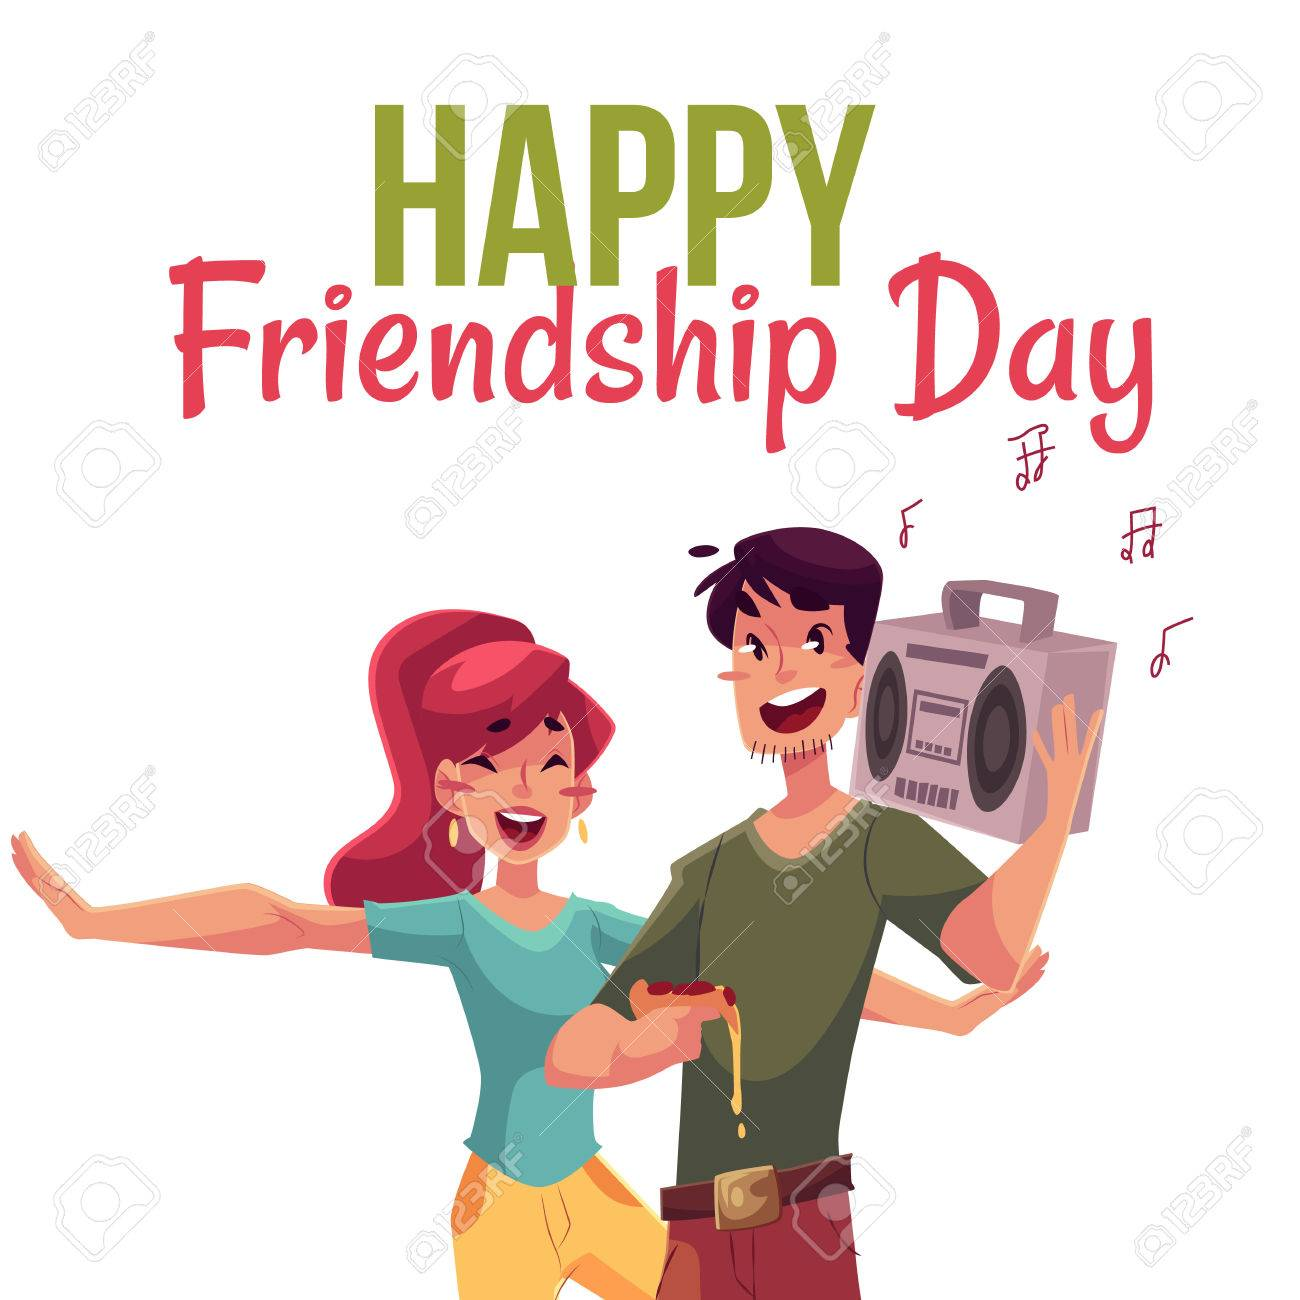 Gentil Happy Friendship Day Greeting Card Design With Friends Having Fun At A  Party, Cartoon Vector